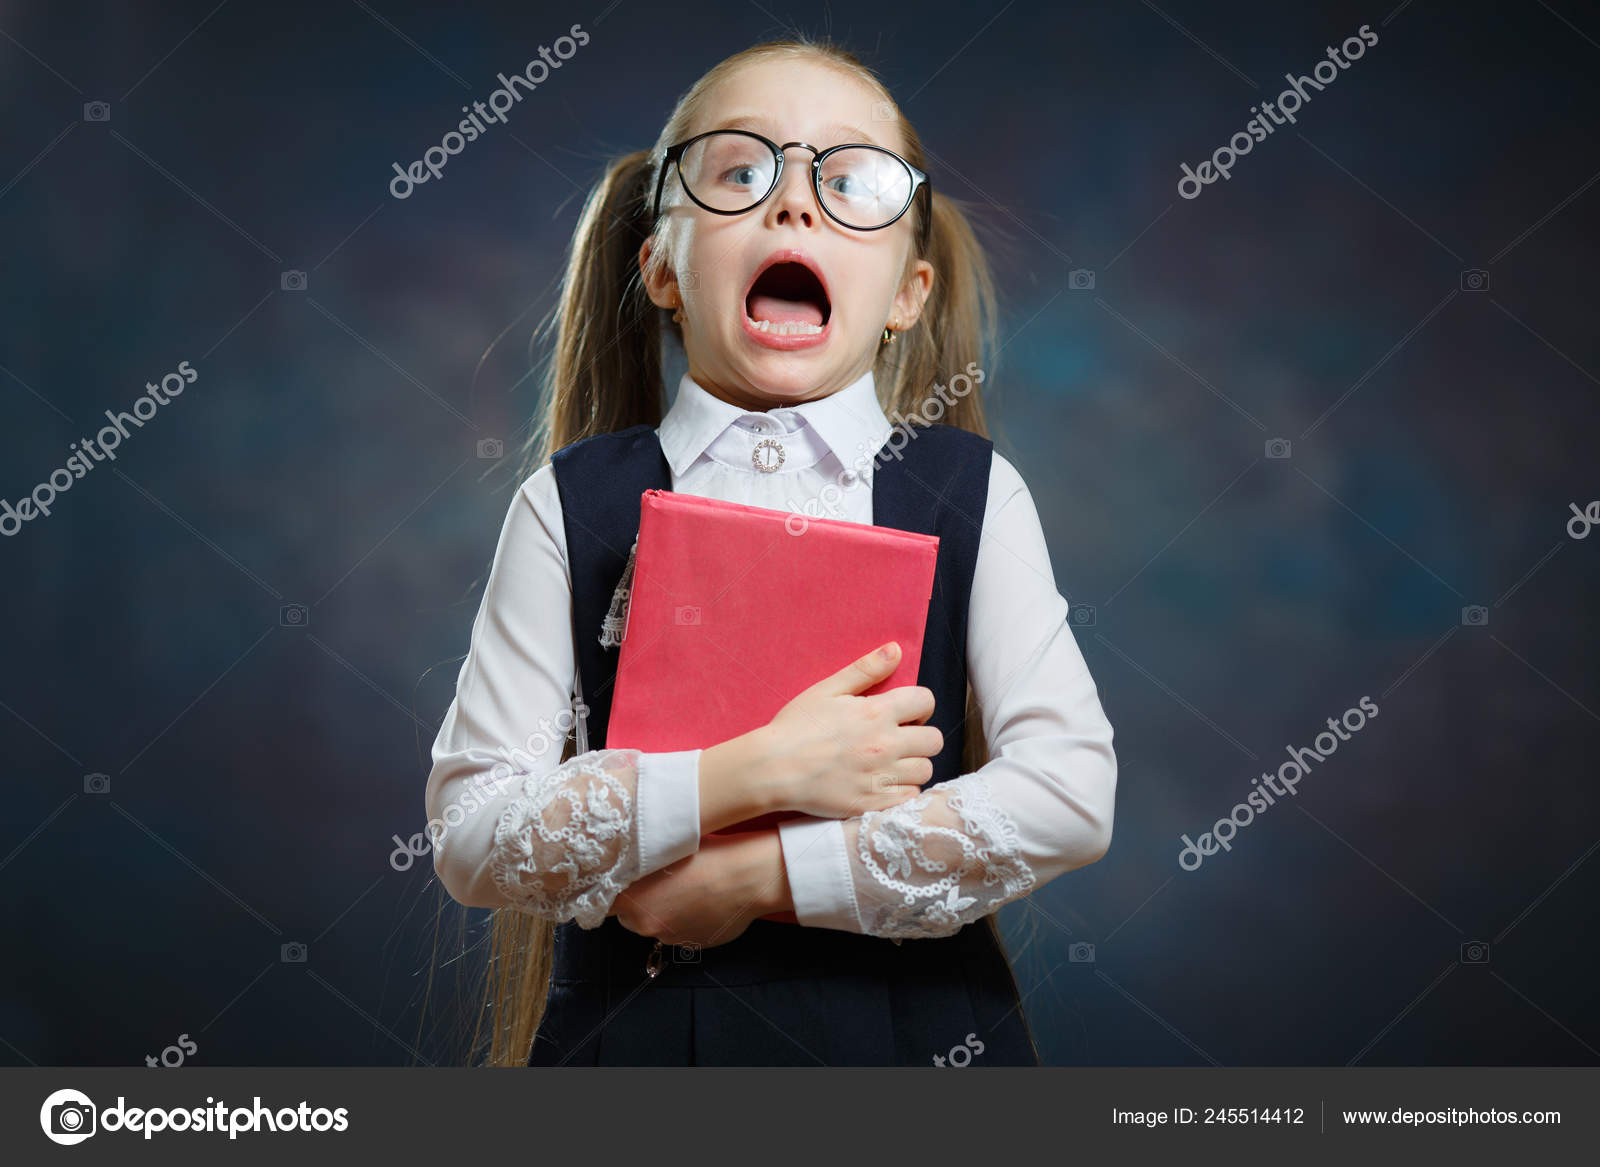 742ec5c5176b Intelligent Girl Wear Big Glasses and Traditional Uniform Shout Loud. Little  Child with Long Hair Ponytail Isolated on Dark Background — Photo by karpik- hoi